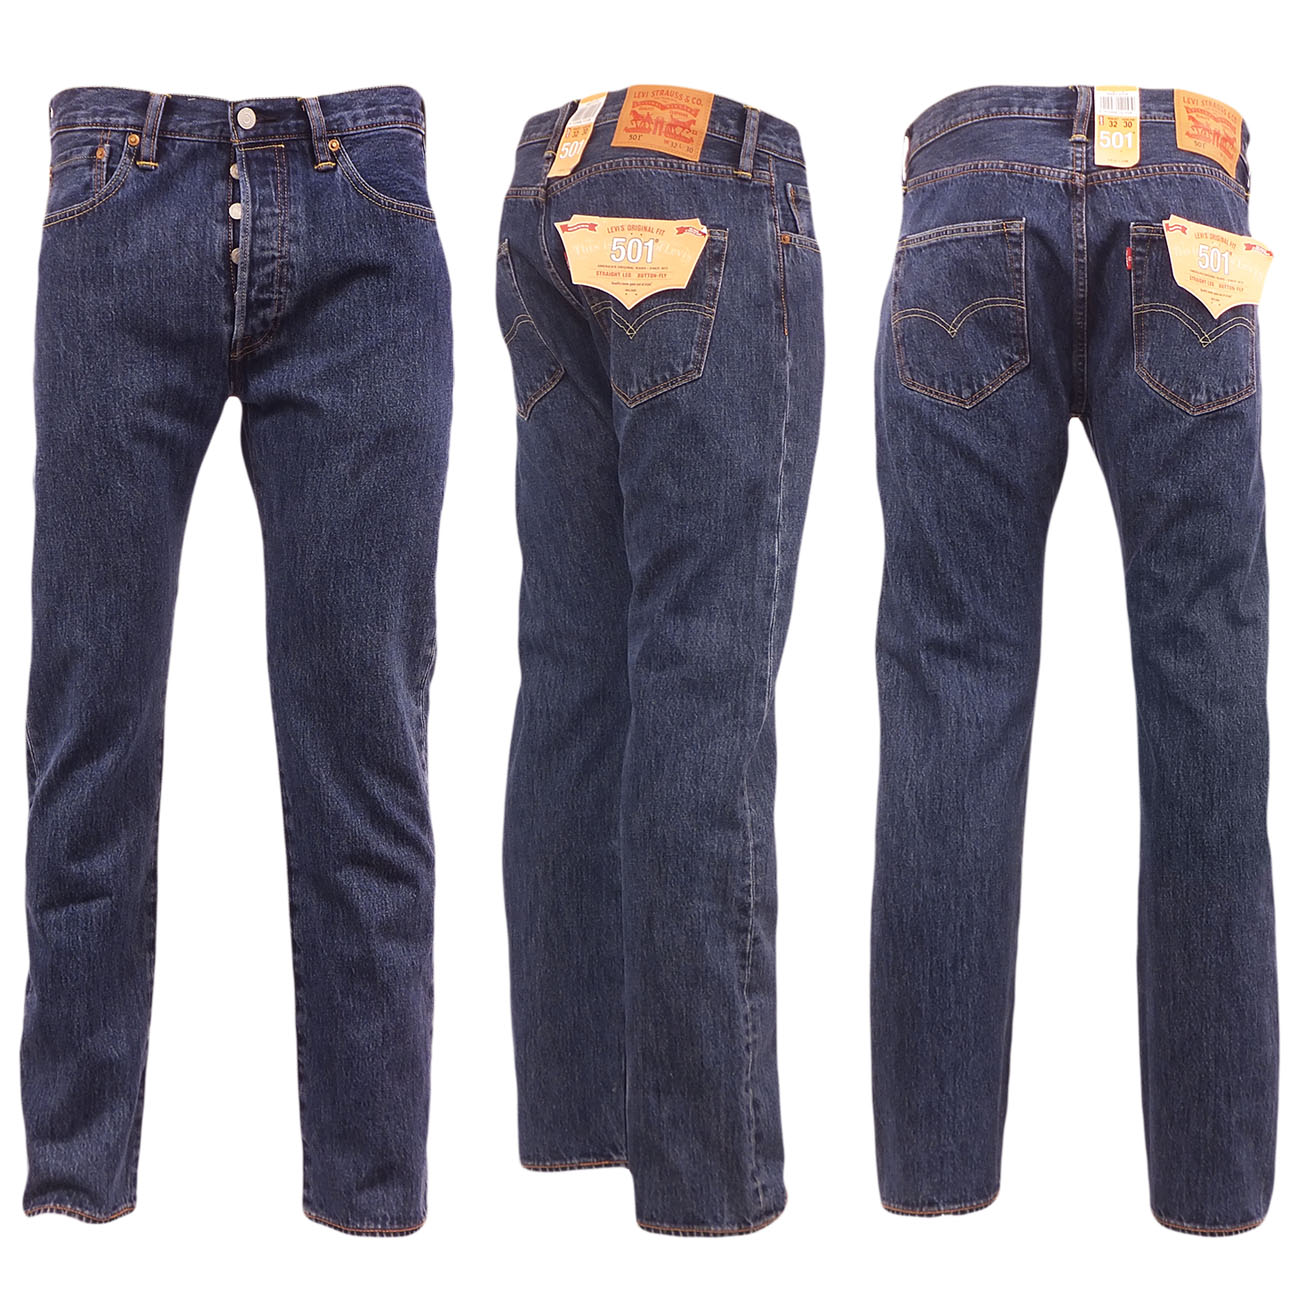 b8a18c31 Sentinel Levi 501 Jeans Mens Levi's Strauss Denim Straight Fit Trouser Pant Button  Fly